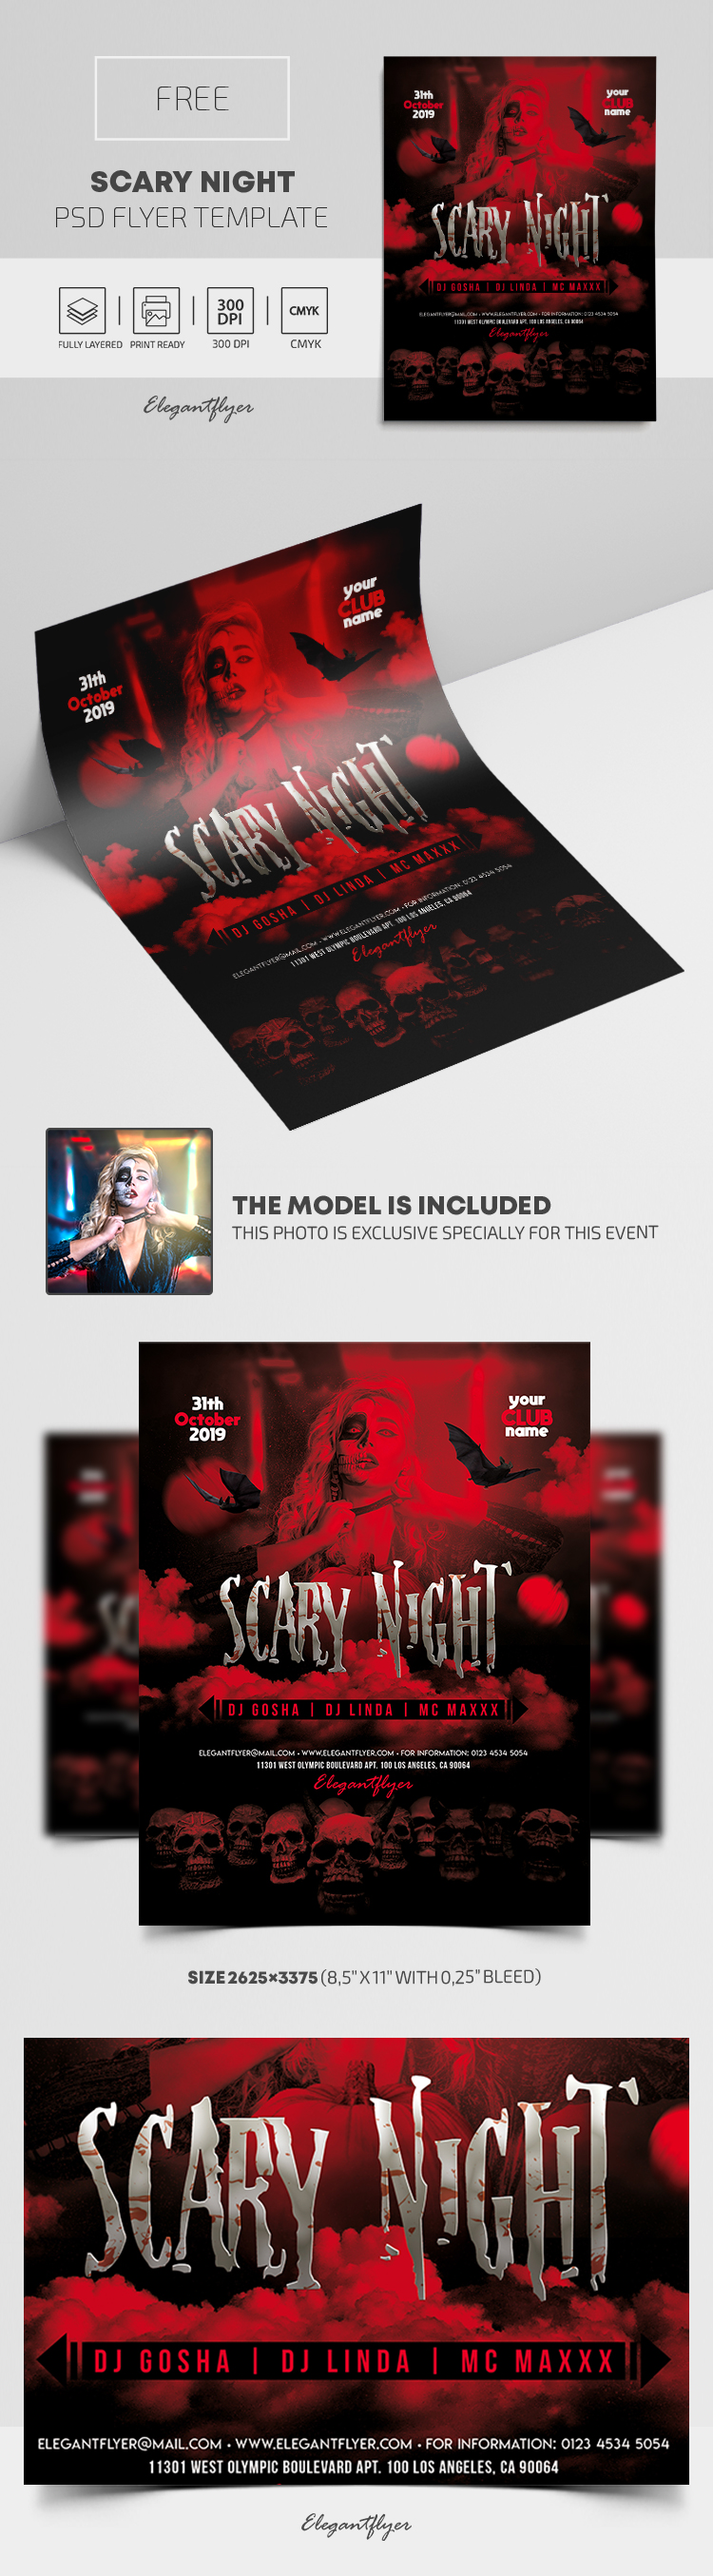 Scary Night – Free PSD Flyer Template